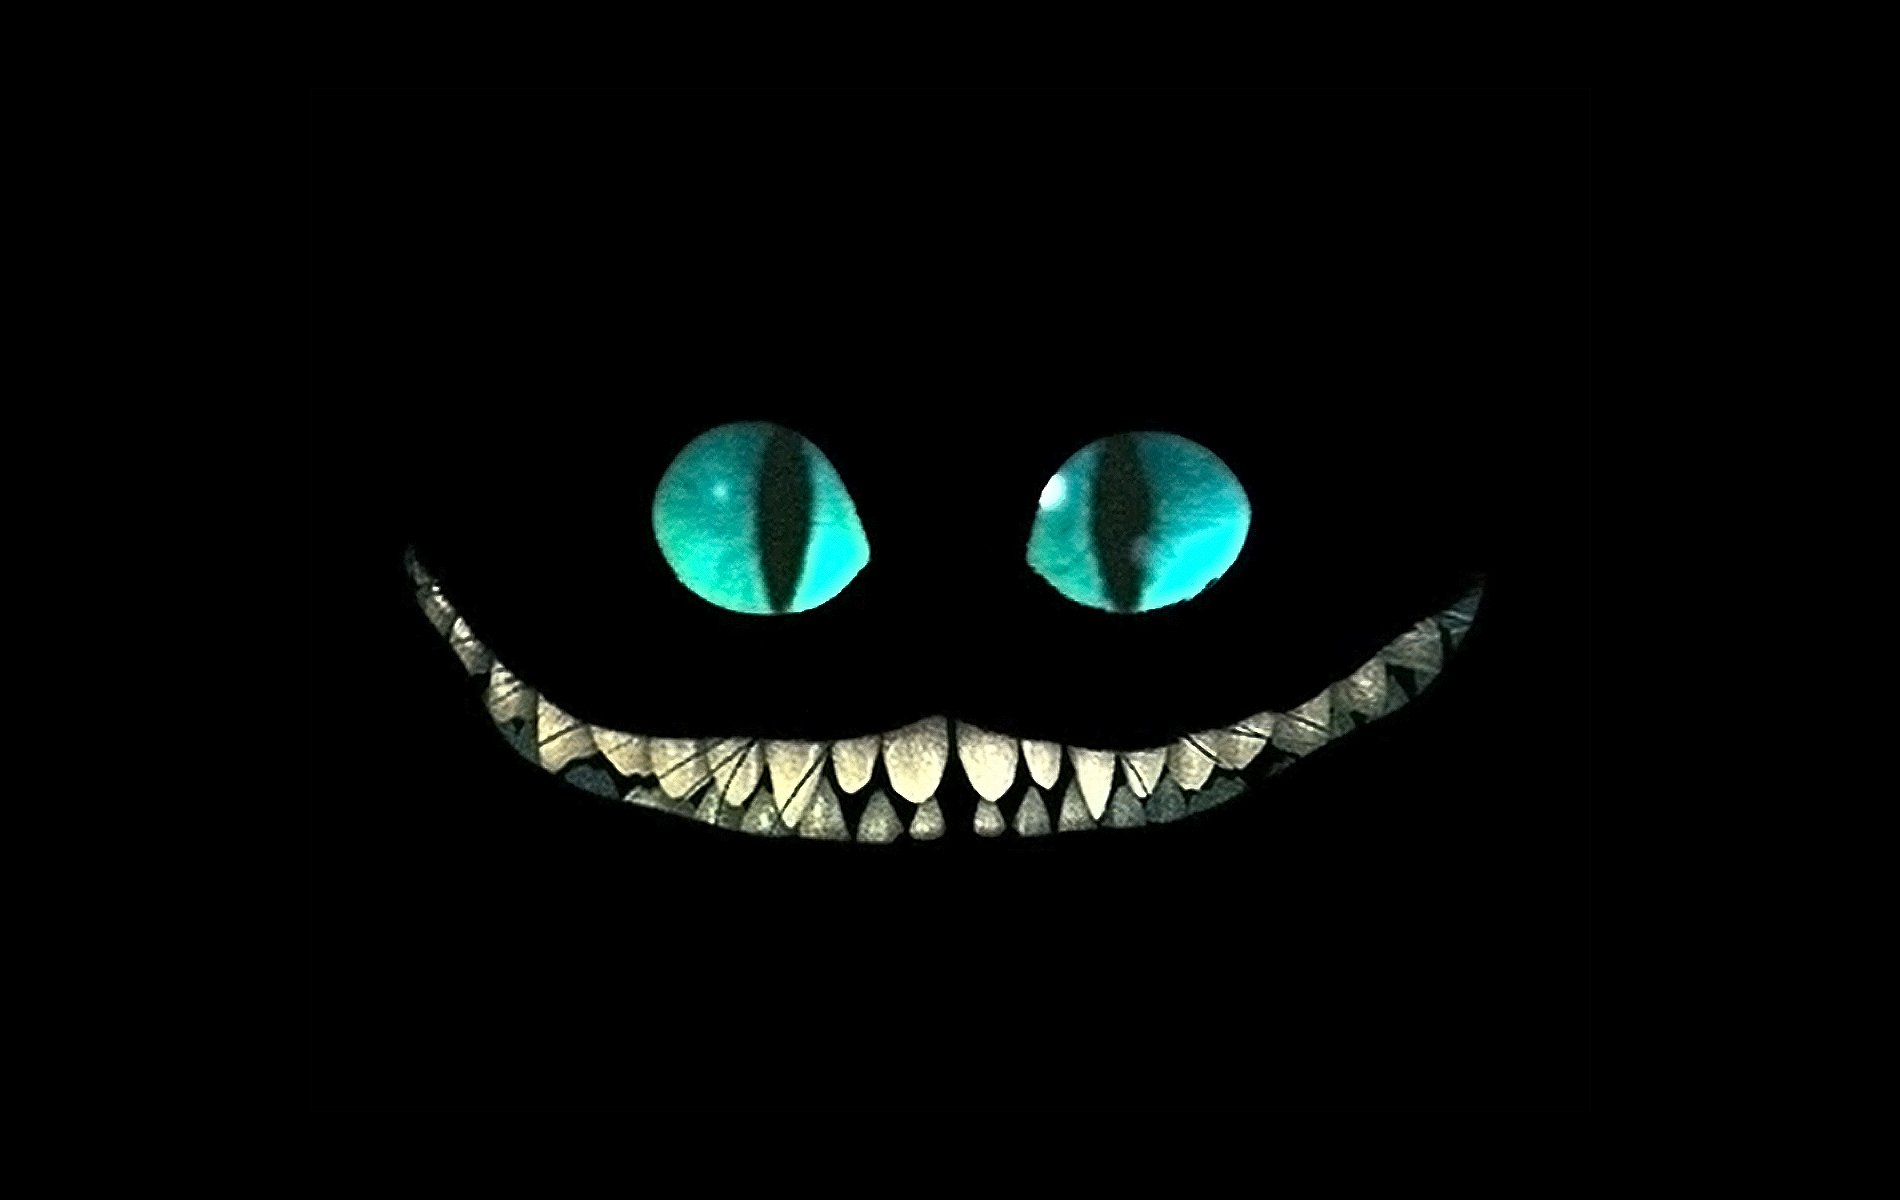 Cheshire Cat Backgrounds 1900x1200